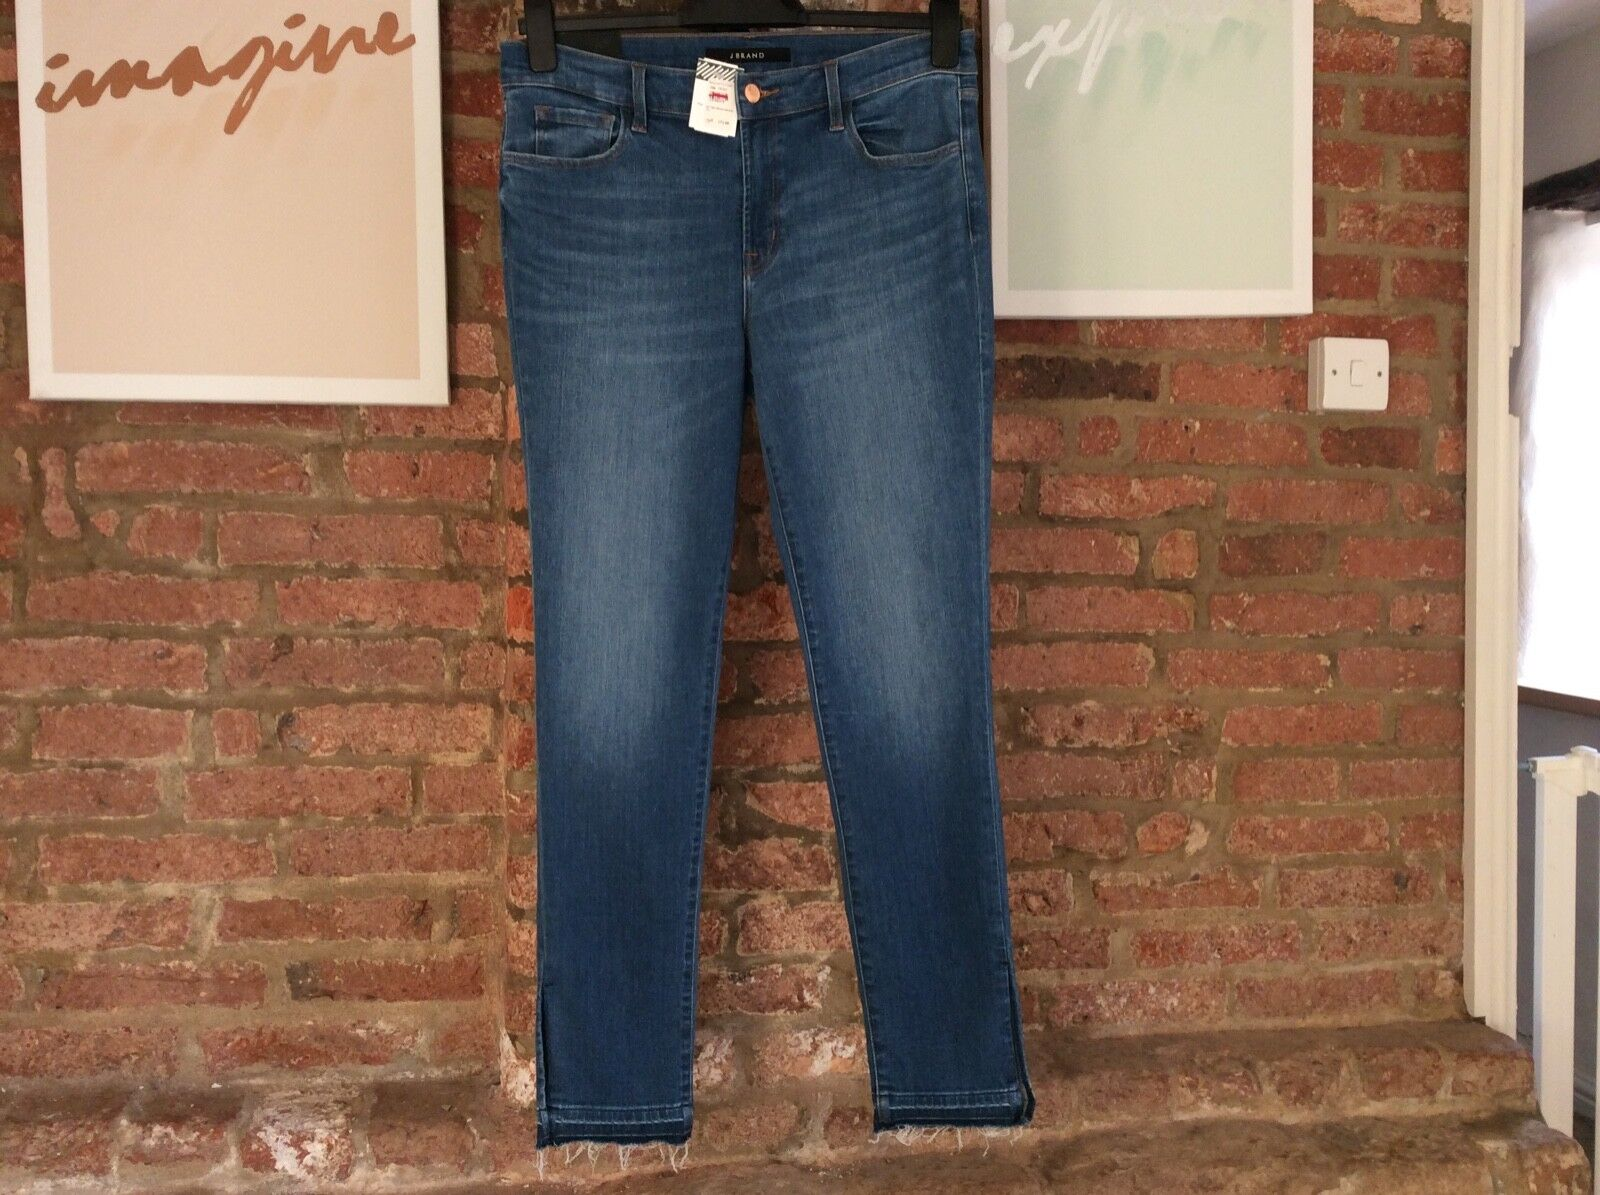 J Brand mid rise skinny jeans in angelic W31 L30